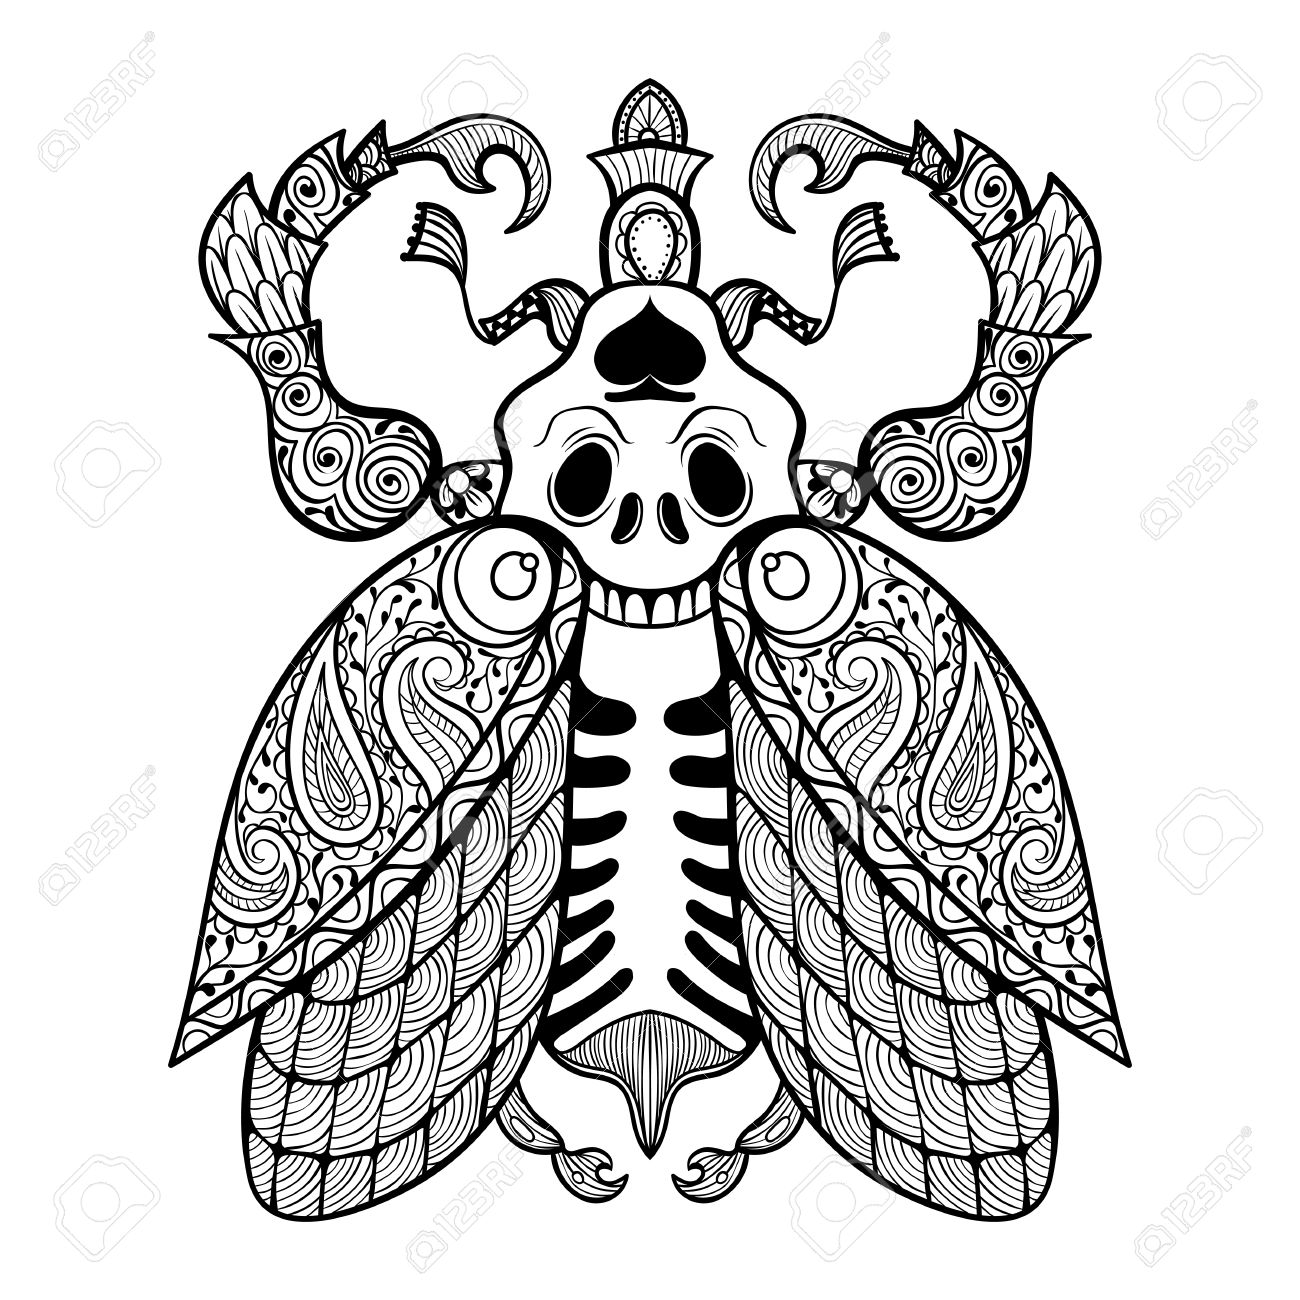 coloring page of bug with skull zentangle illustartion tribal rh 123rf com Coloring Pattern Vector Vector Coloring Boy